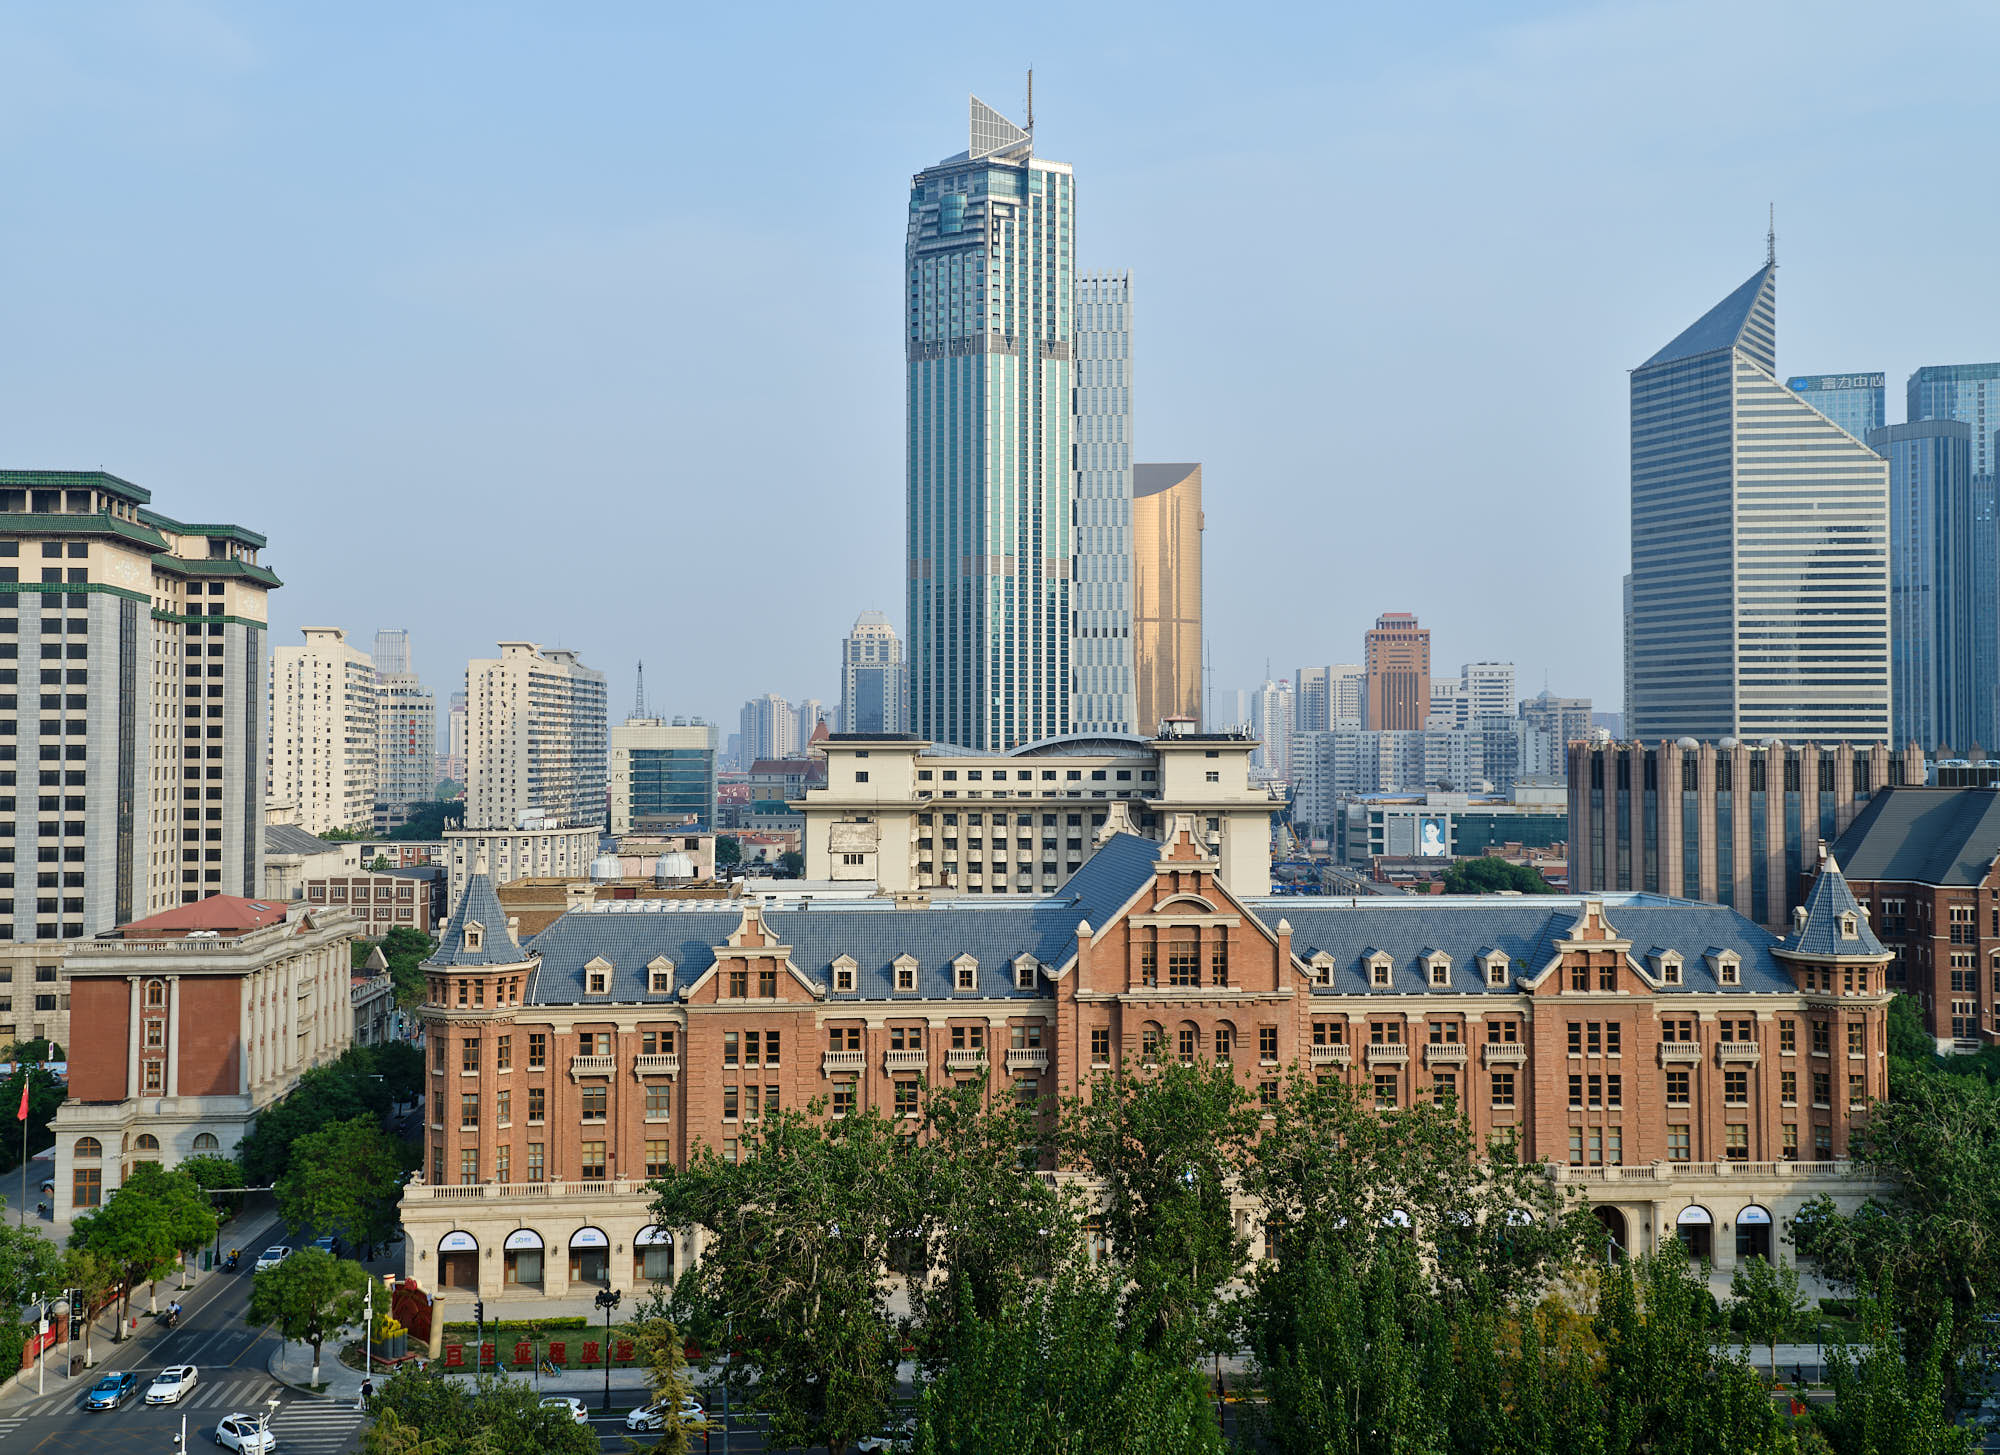 Historic architecture in Tianjin, China